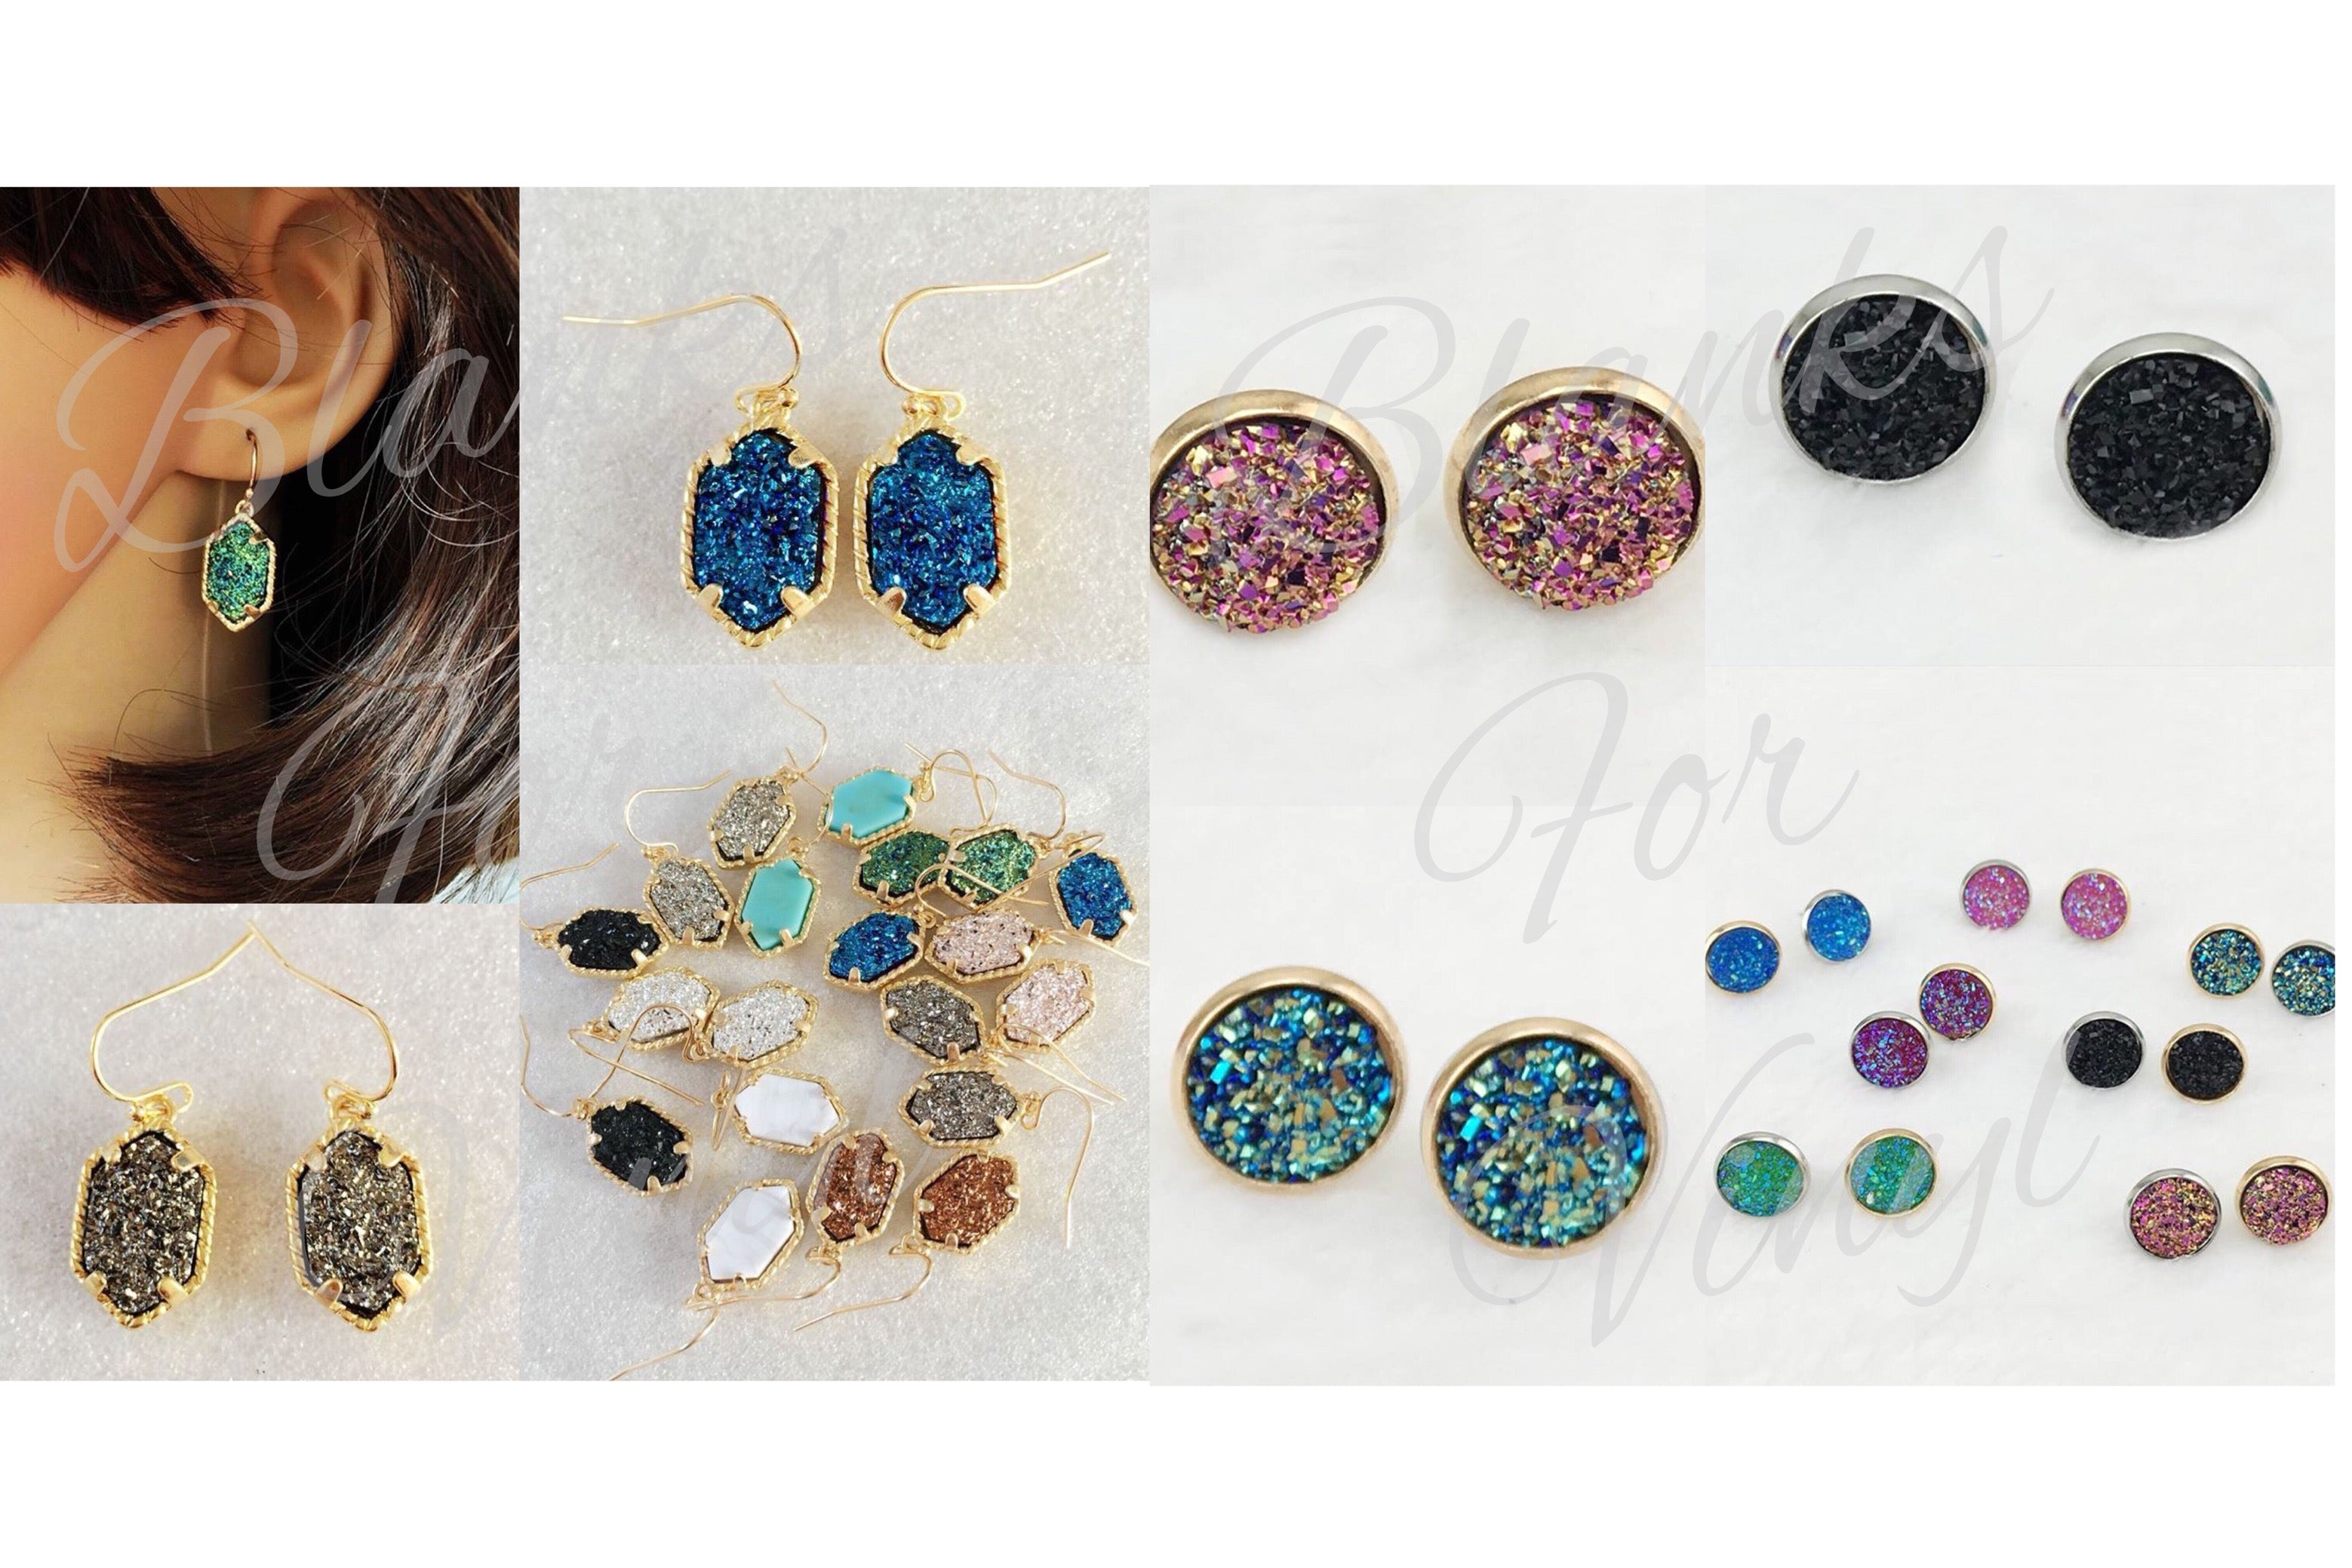 DRUZY INSPIRED EARRINGS - DROP & STUD